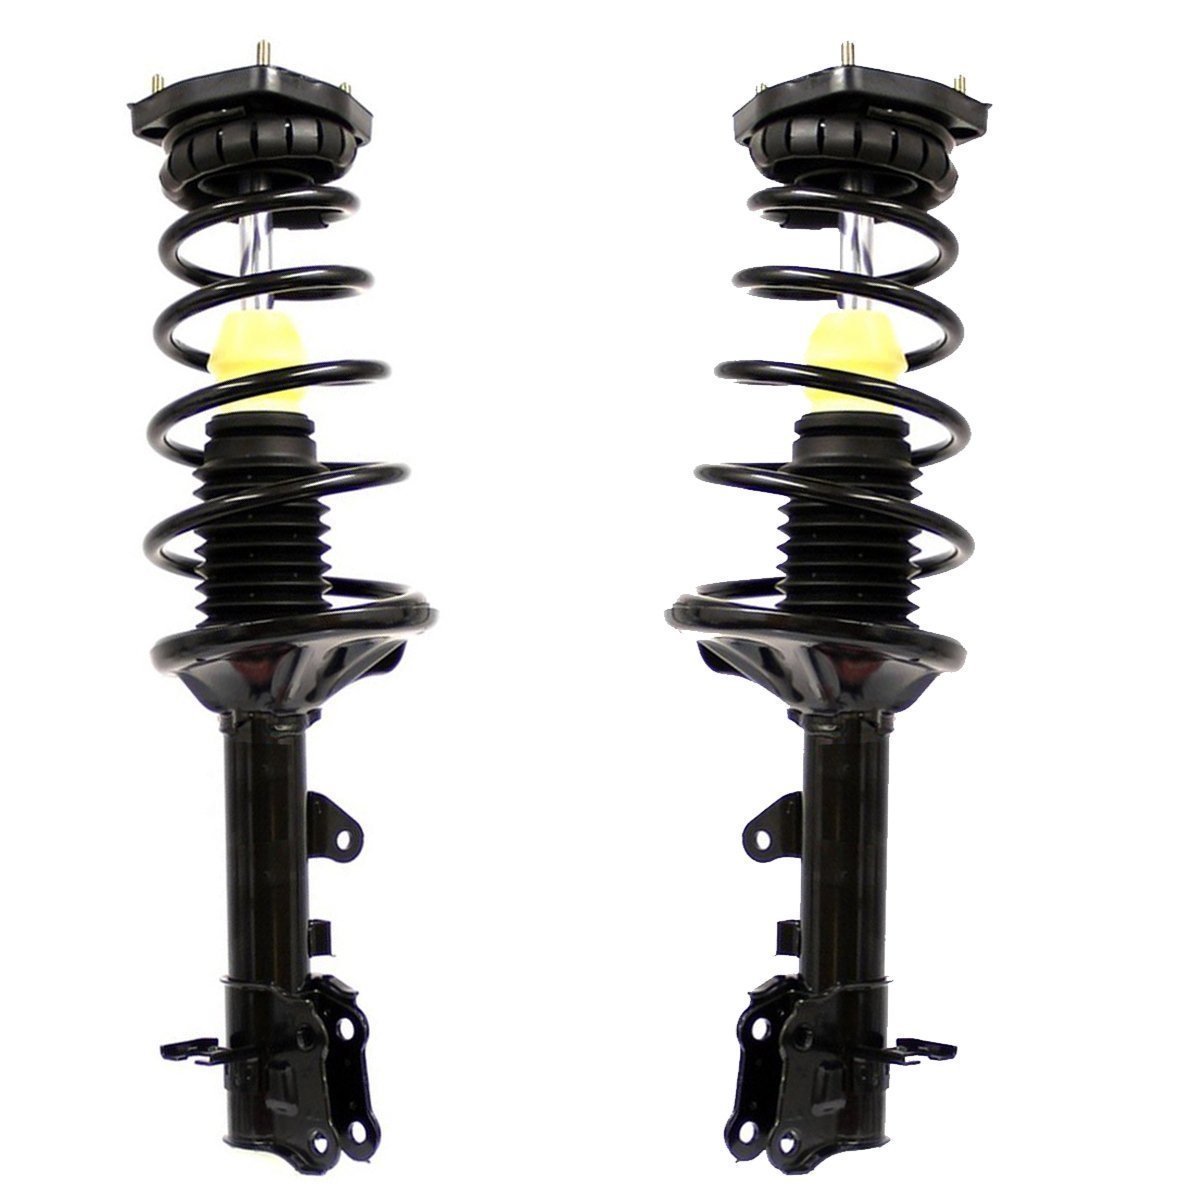 Detroit Axle - Brand New Rear Driver and Passenger Side Quick-Strut Complete Assemblies for [2001 2002 2003 2004 2005 2006 Hyundai Elantra]